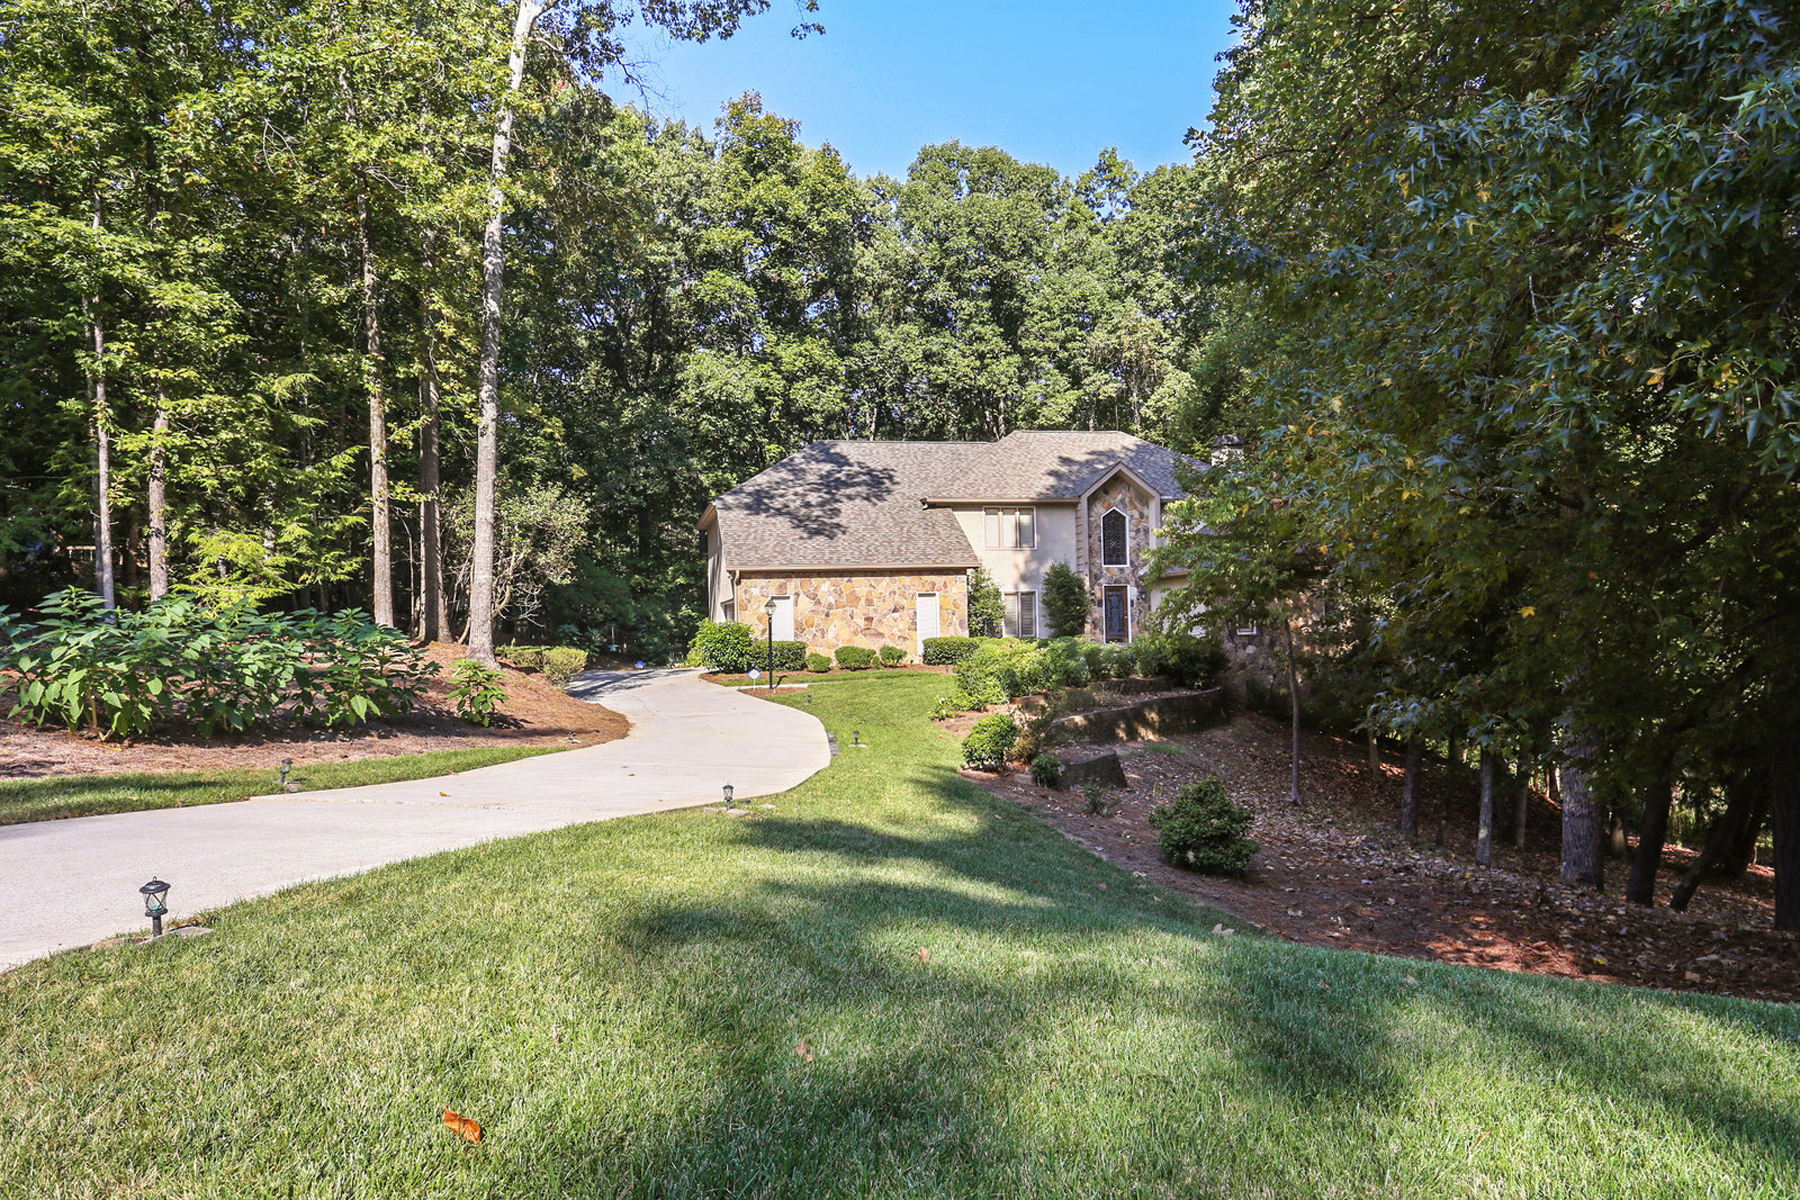 Single Family Homes pour l Vente à Meticulously Maintained Home on 1.1+ Beautiful Acres in Roswell 9310 Bluffwind Chase, Roswell, Georgia 30076 États-Unis